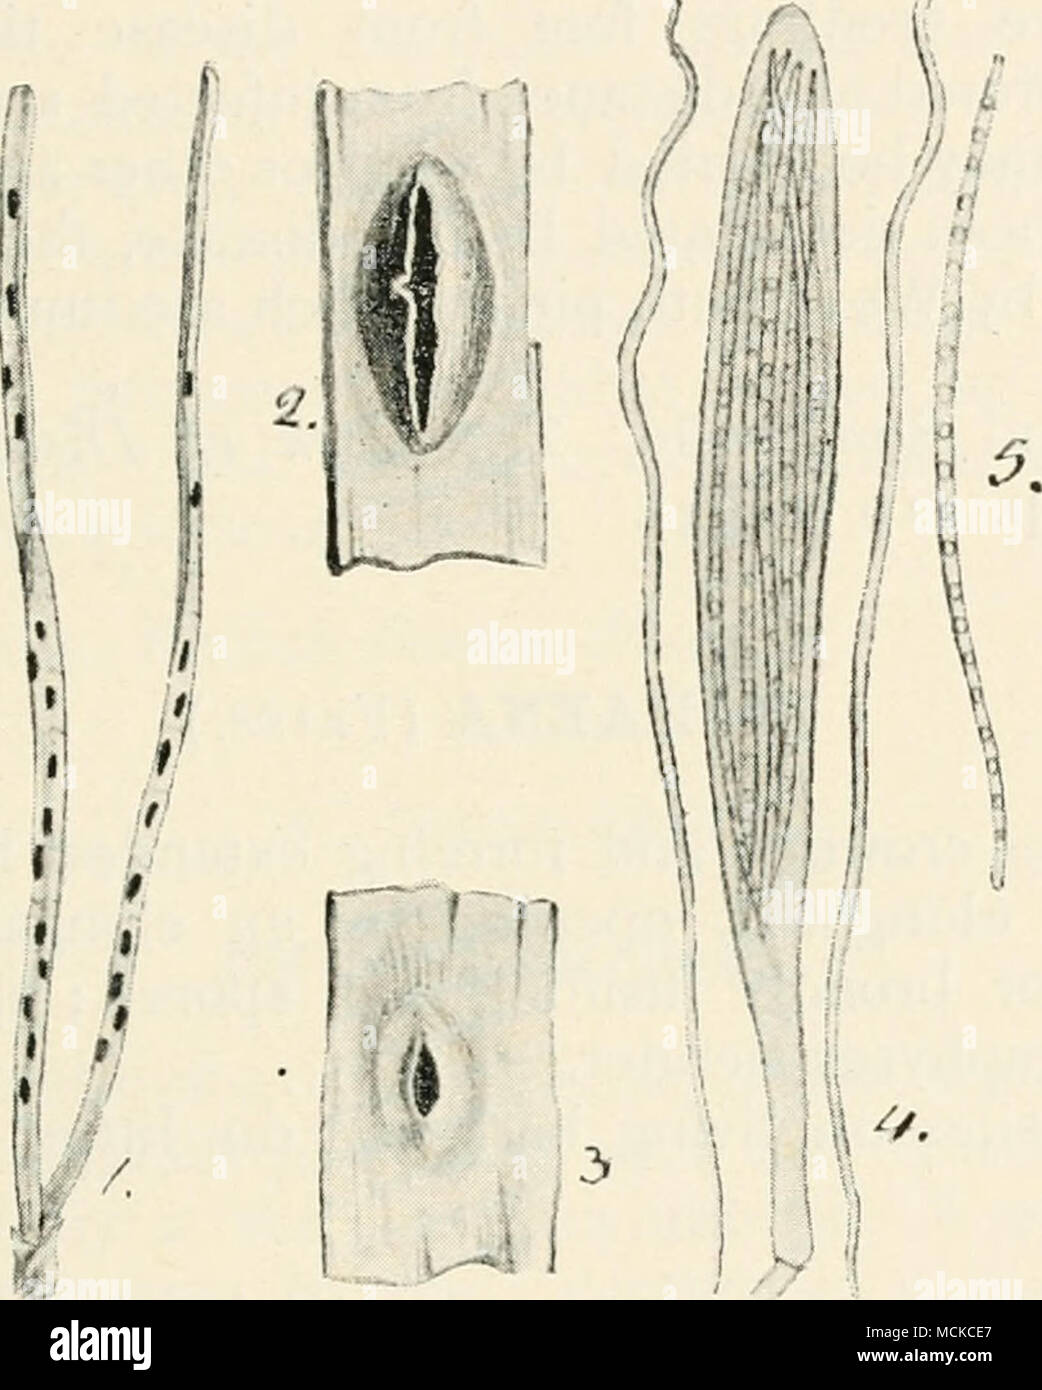 Fig 71 Lophodermium Pinastri I Fungus On Pine Leaves 2 Diagram Showing The Stages Of Germination Ascigerous Form 3 Conidial 4 Ascus With Spores 5 A Single Spore